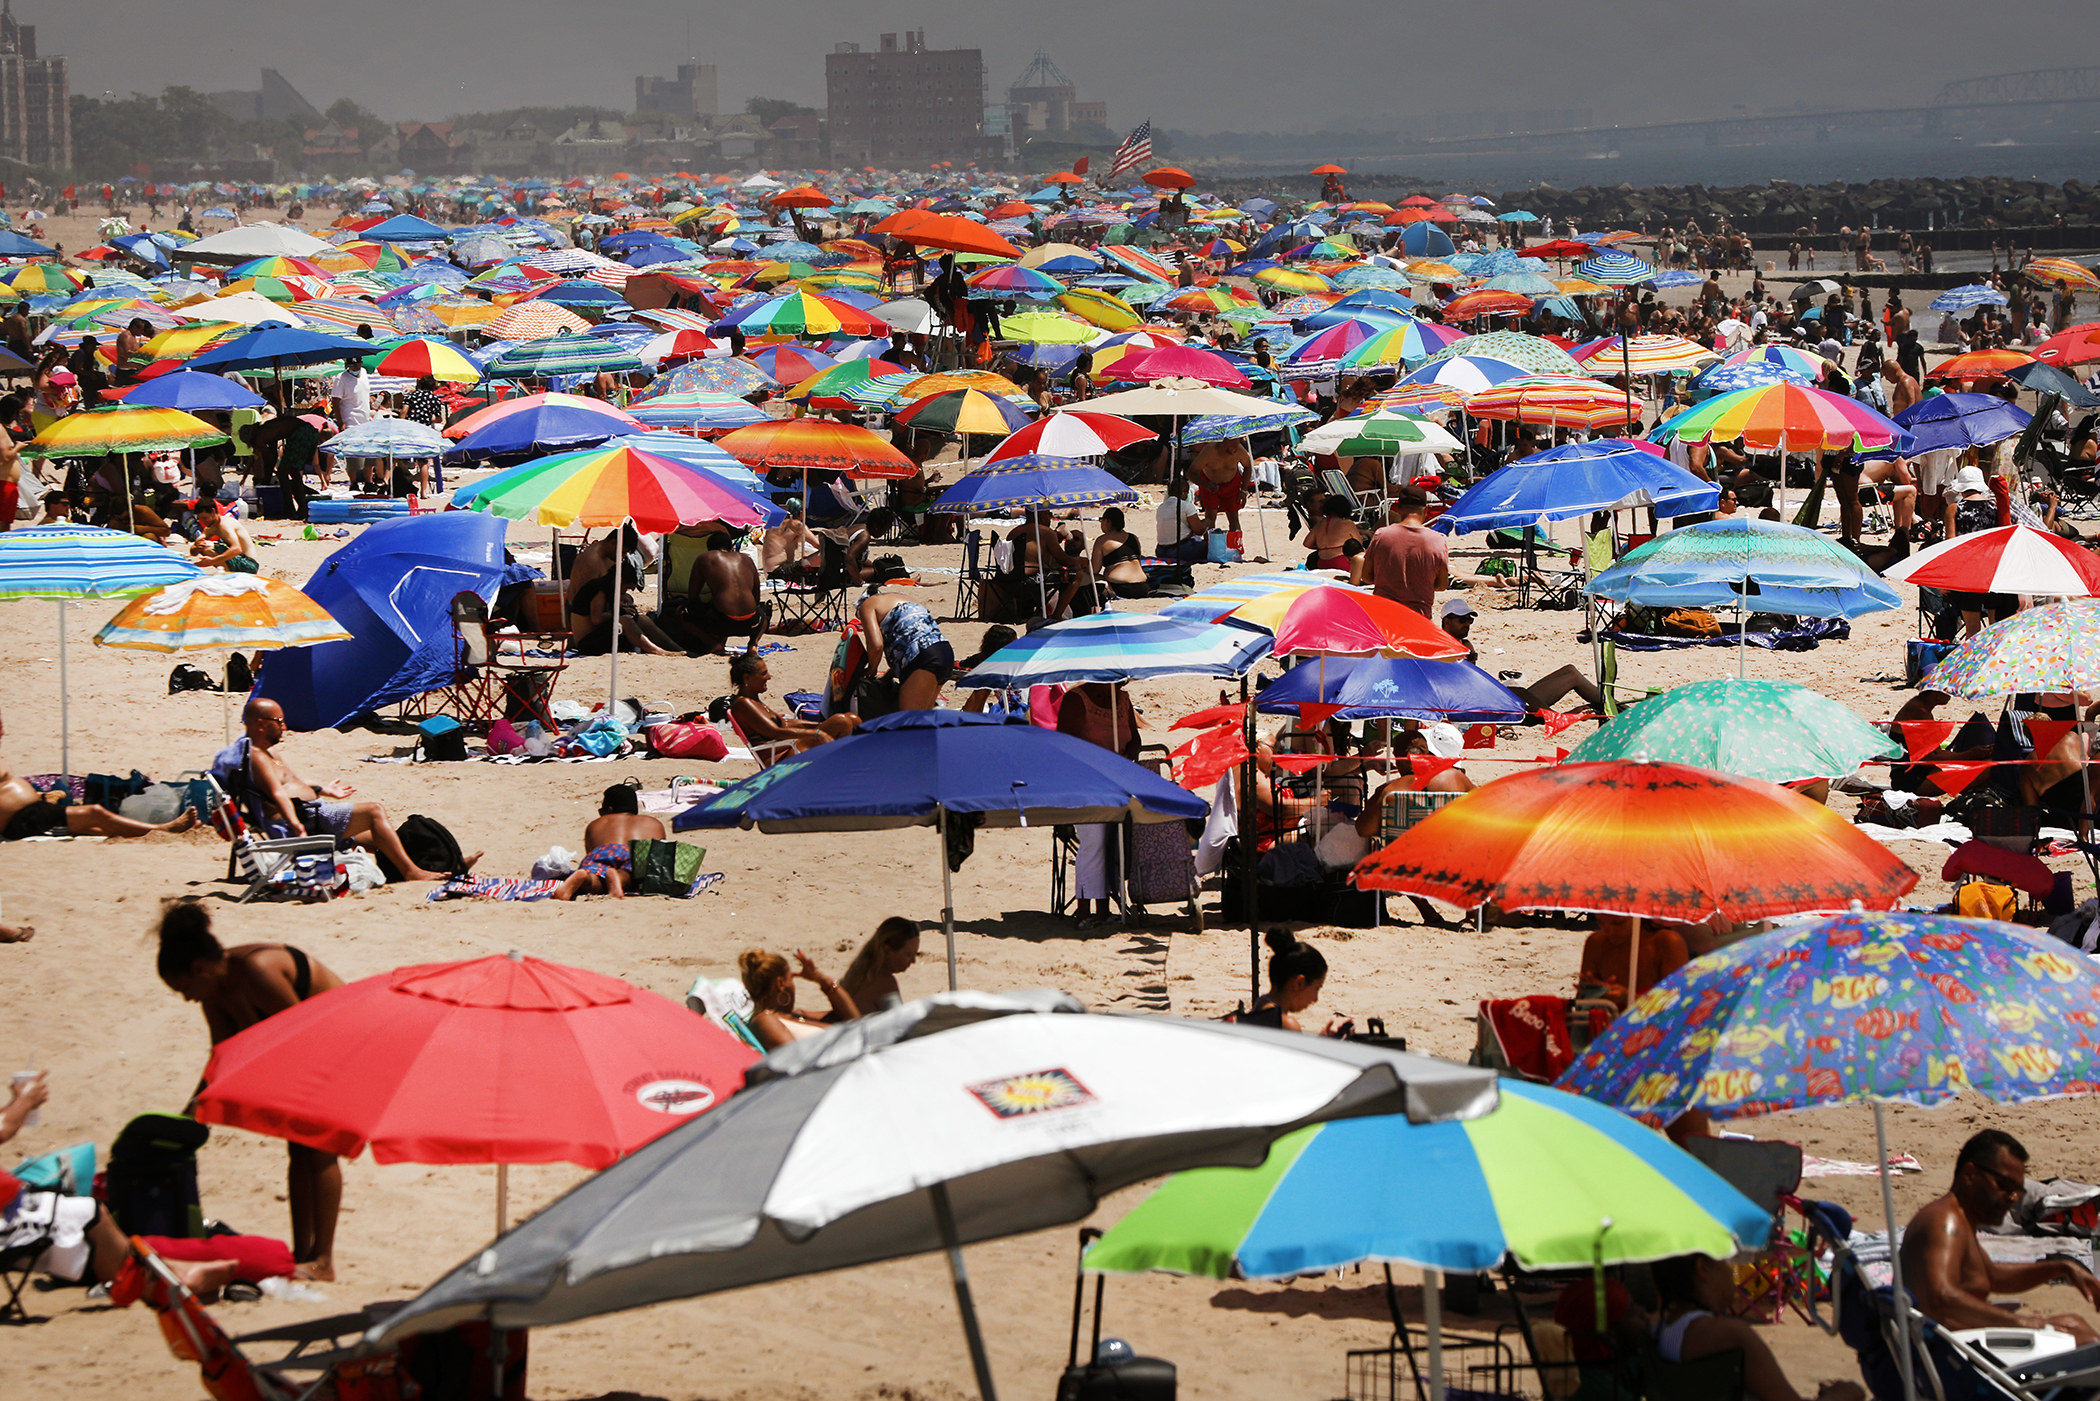 A crowded beach is filled with sunbathers and people lounging under umbrellas